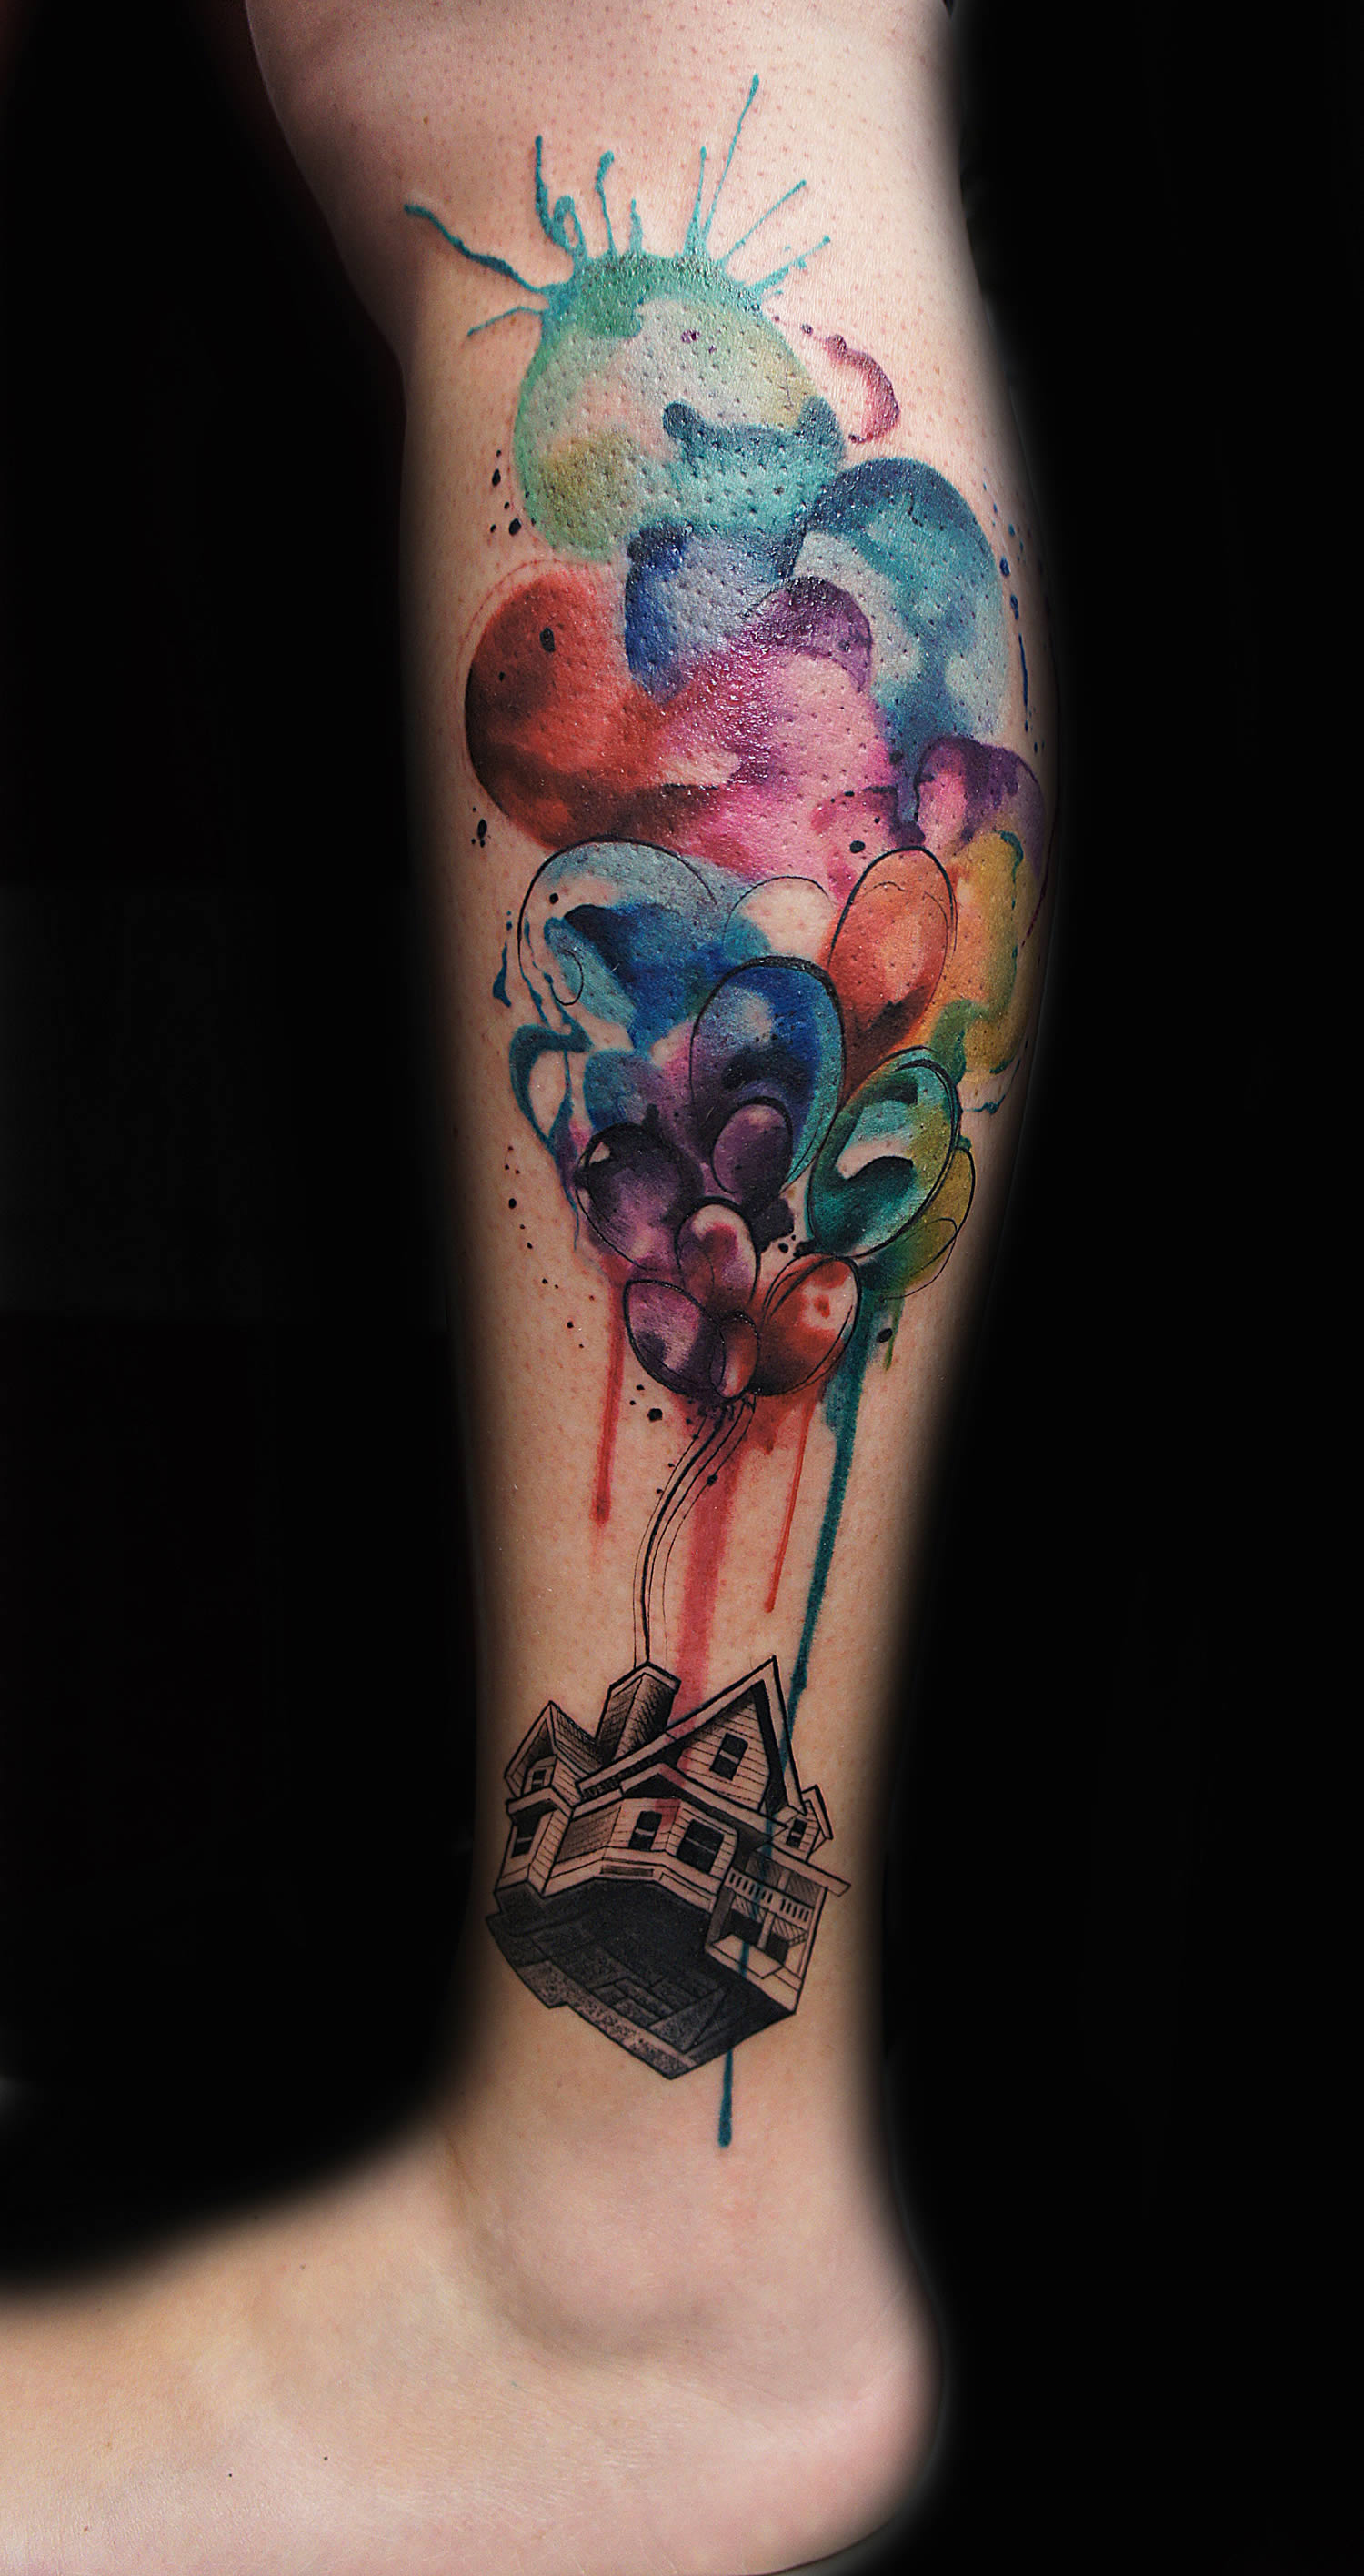 up in the air, balloons and house, tattoo by jay freestyle